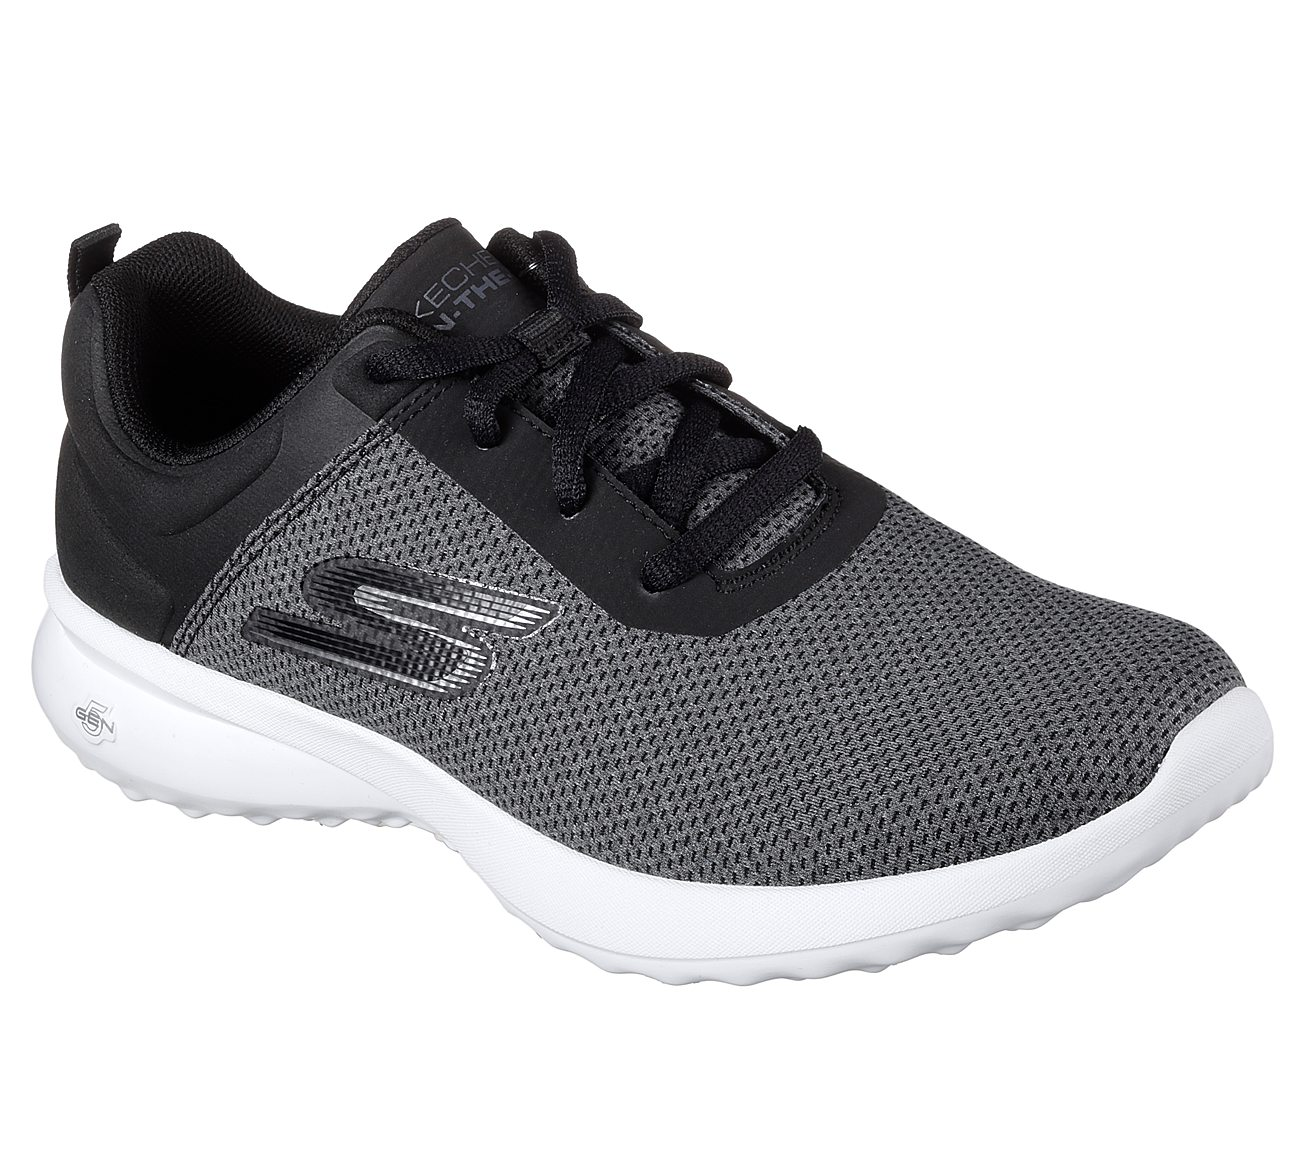 skechers on the go city 3.0